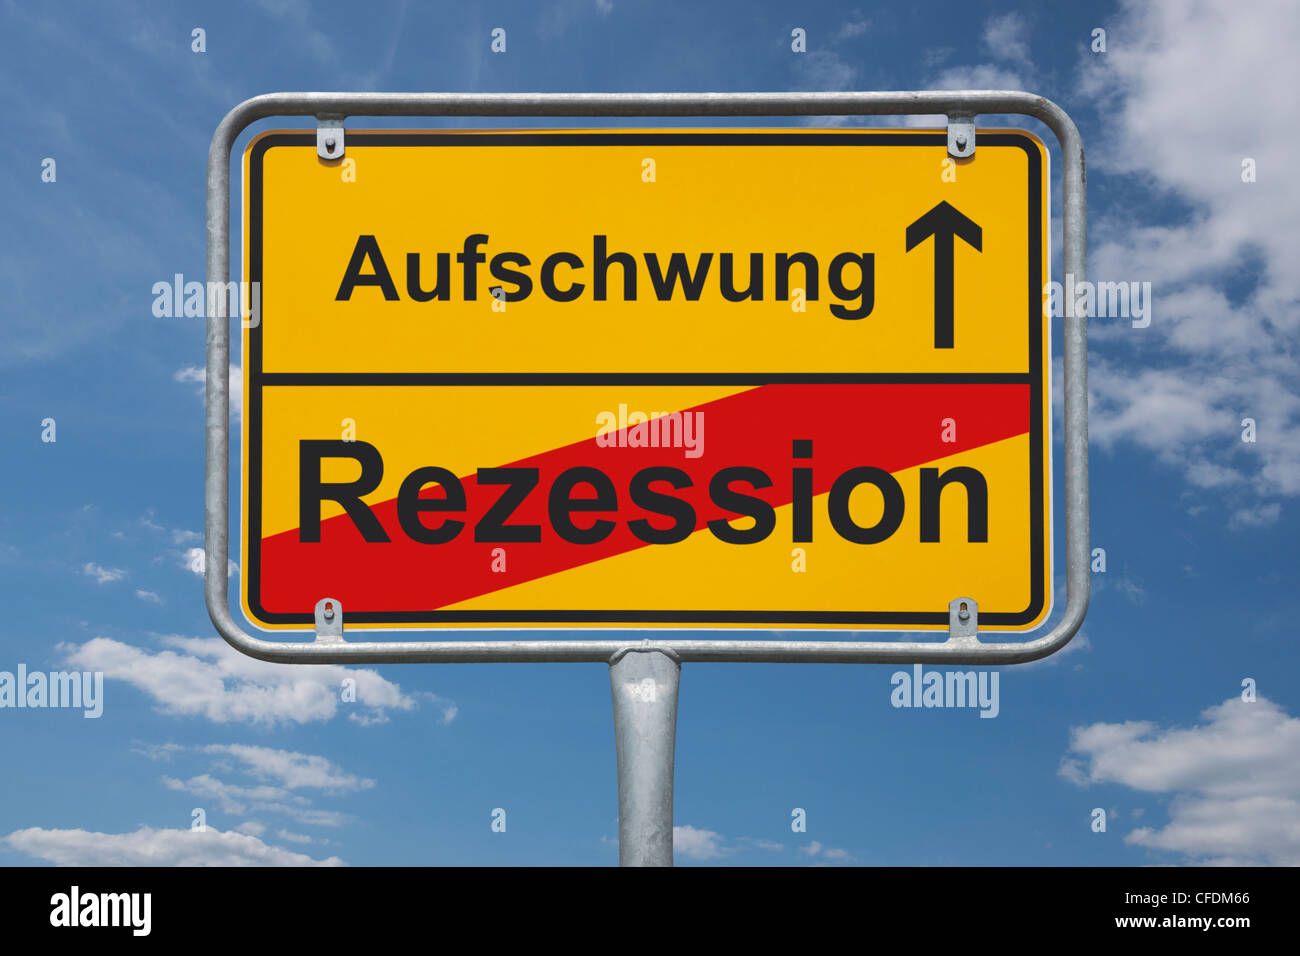 Town sign Germany, End of the town with the inscription end of downturn, beginning upswing, background sky. - Stock Image